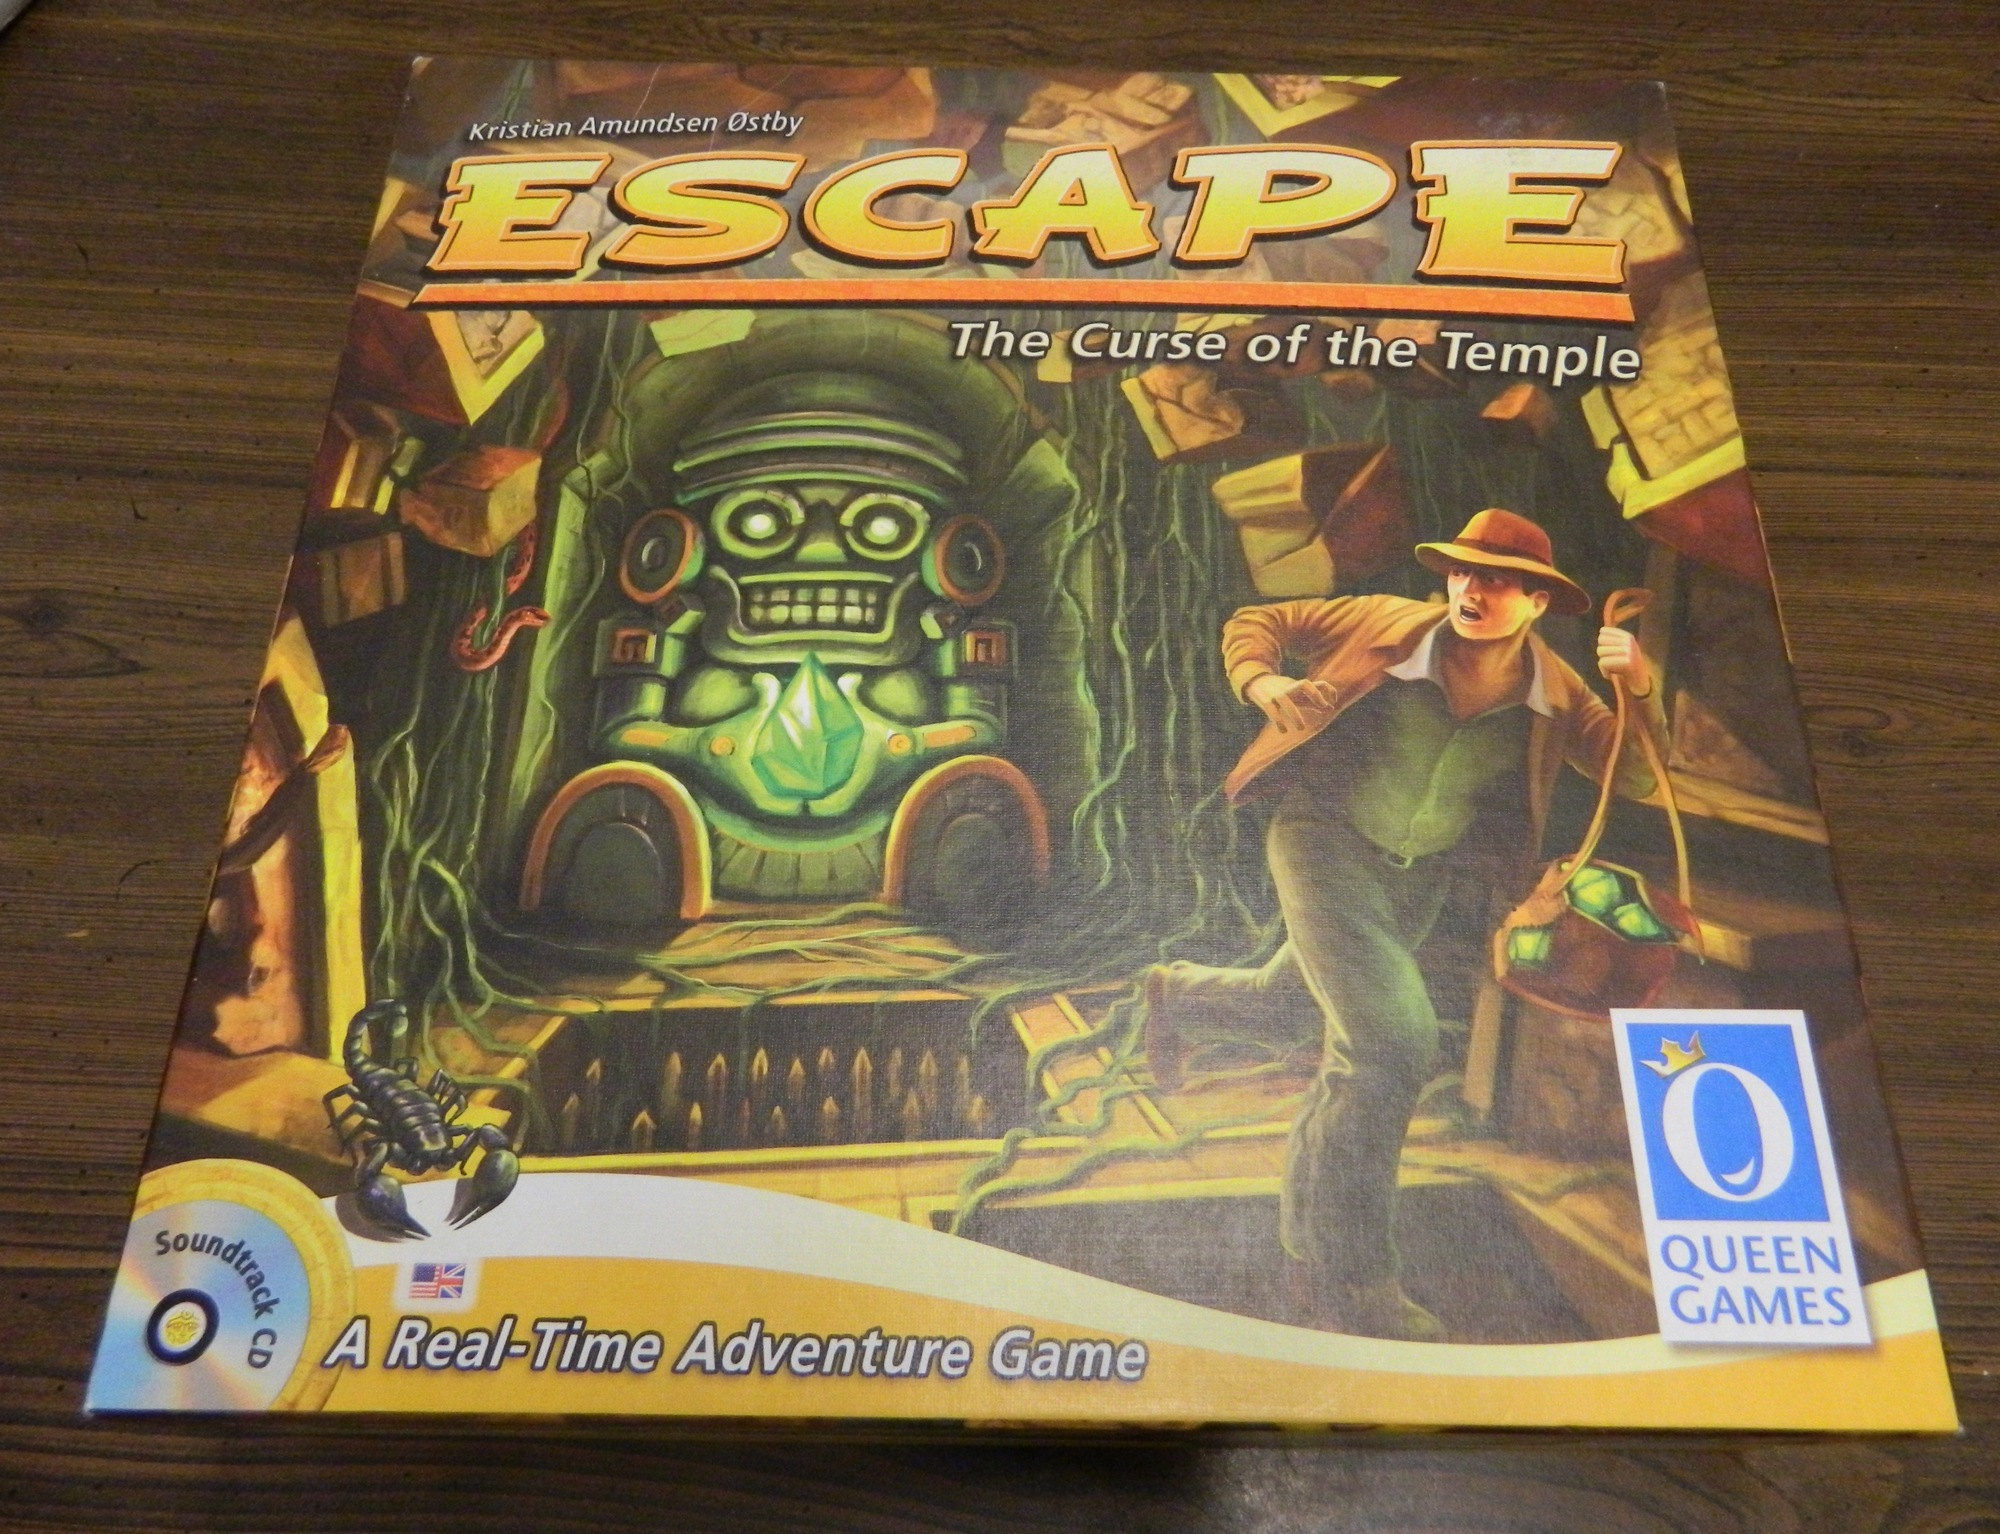 Box for Escape The Curse of the Temple